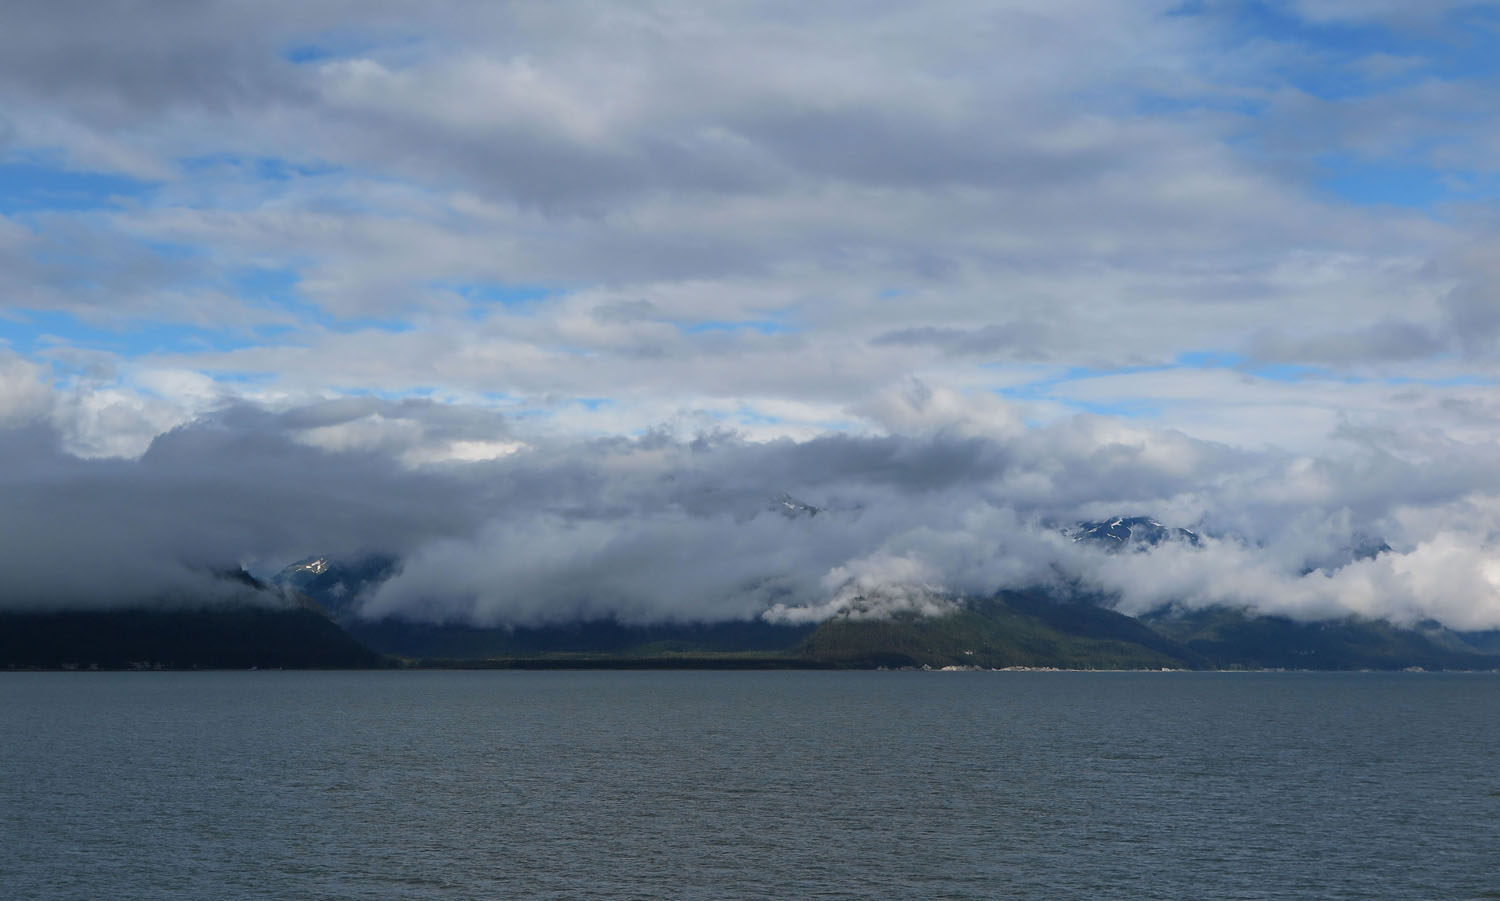 Alaska-State-Ferry-Inside-Passage-Scenery-Mountains-Sky